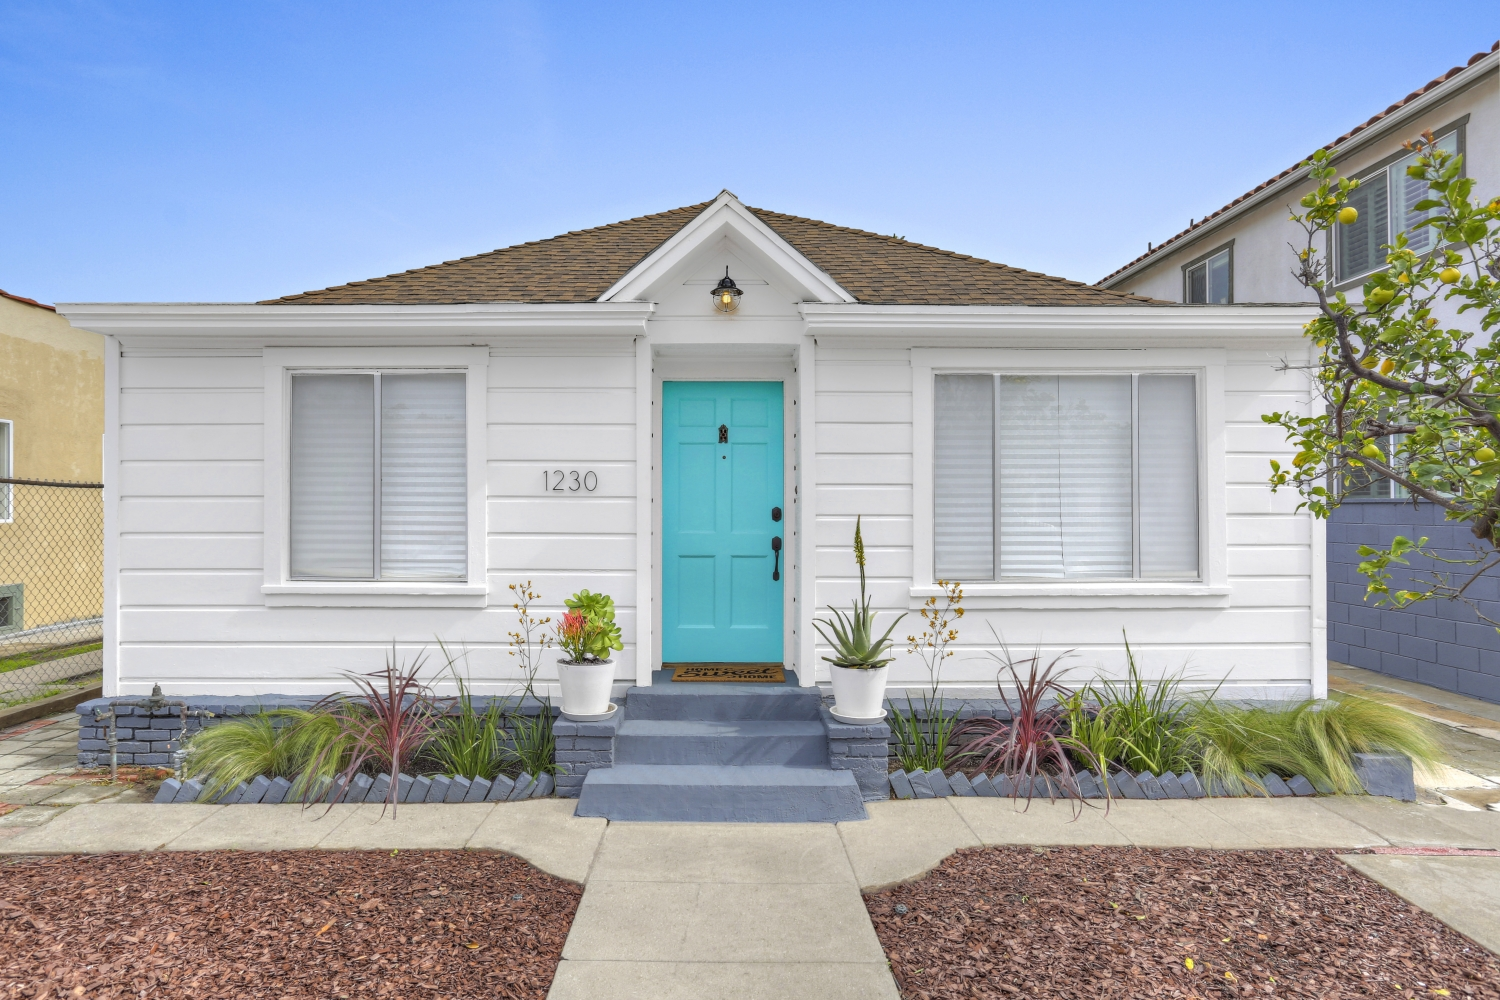 Mid-wilshire california bungalow